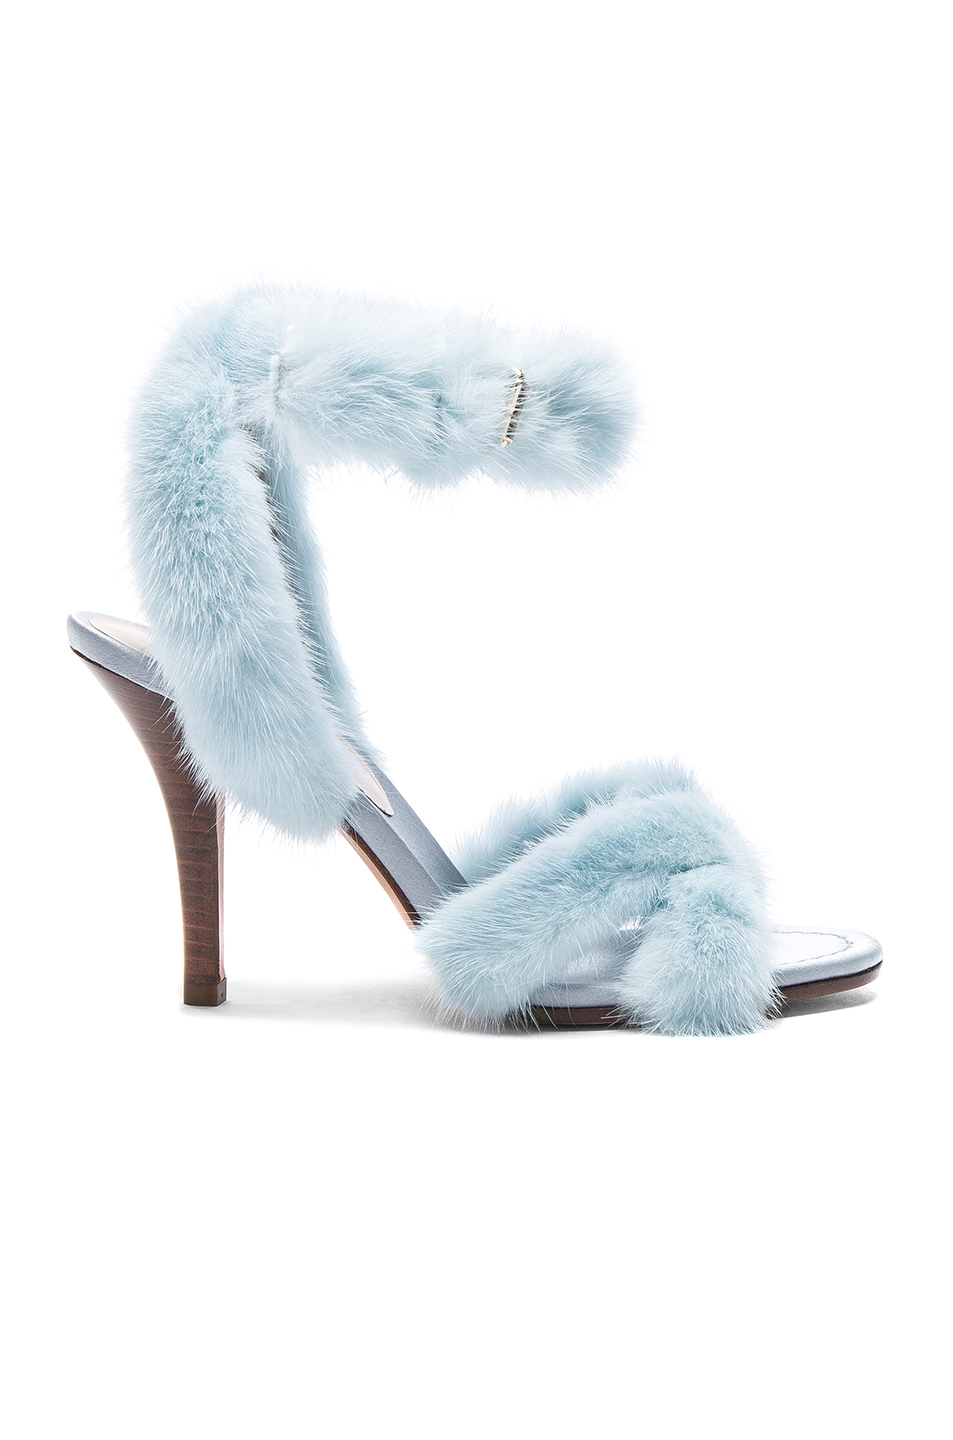 57fce92934e7 Buy Original Valentino Mink Fur Ankle Strap Heels at Indonesia ...